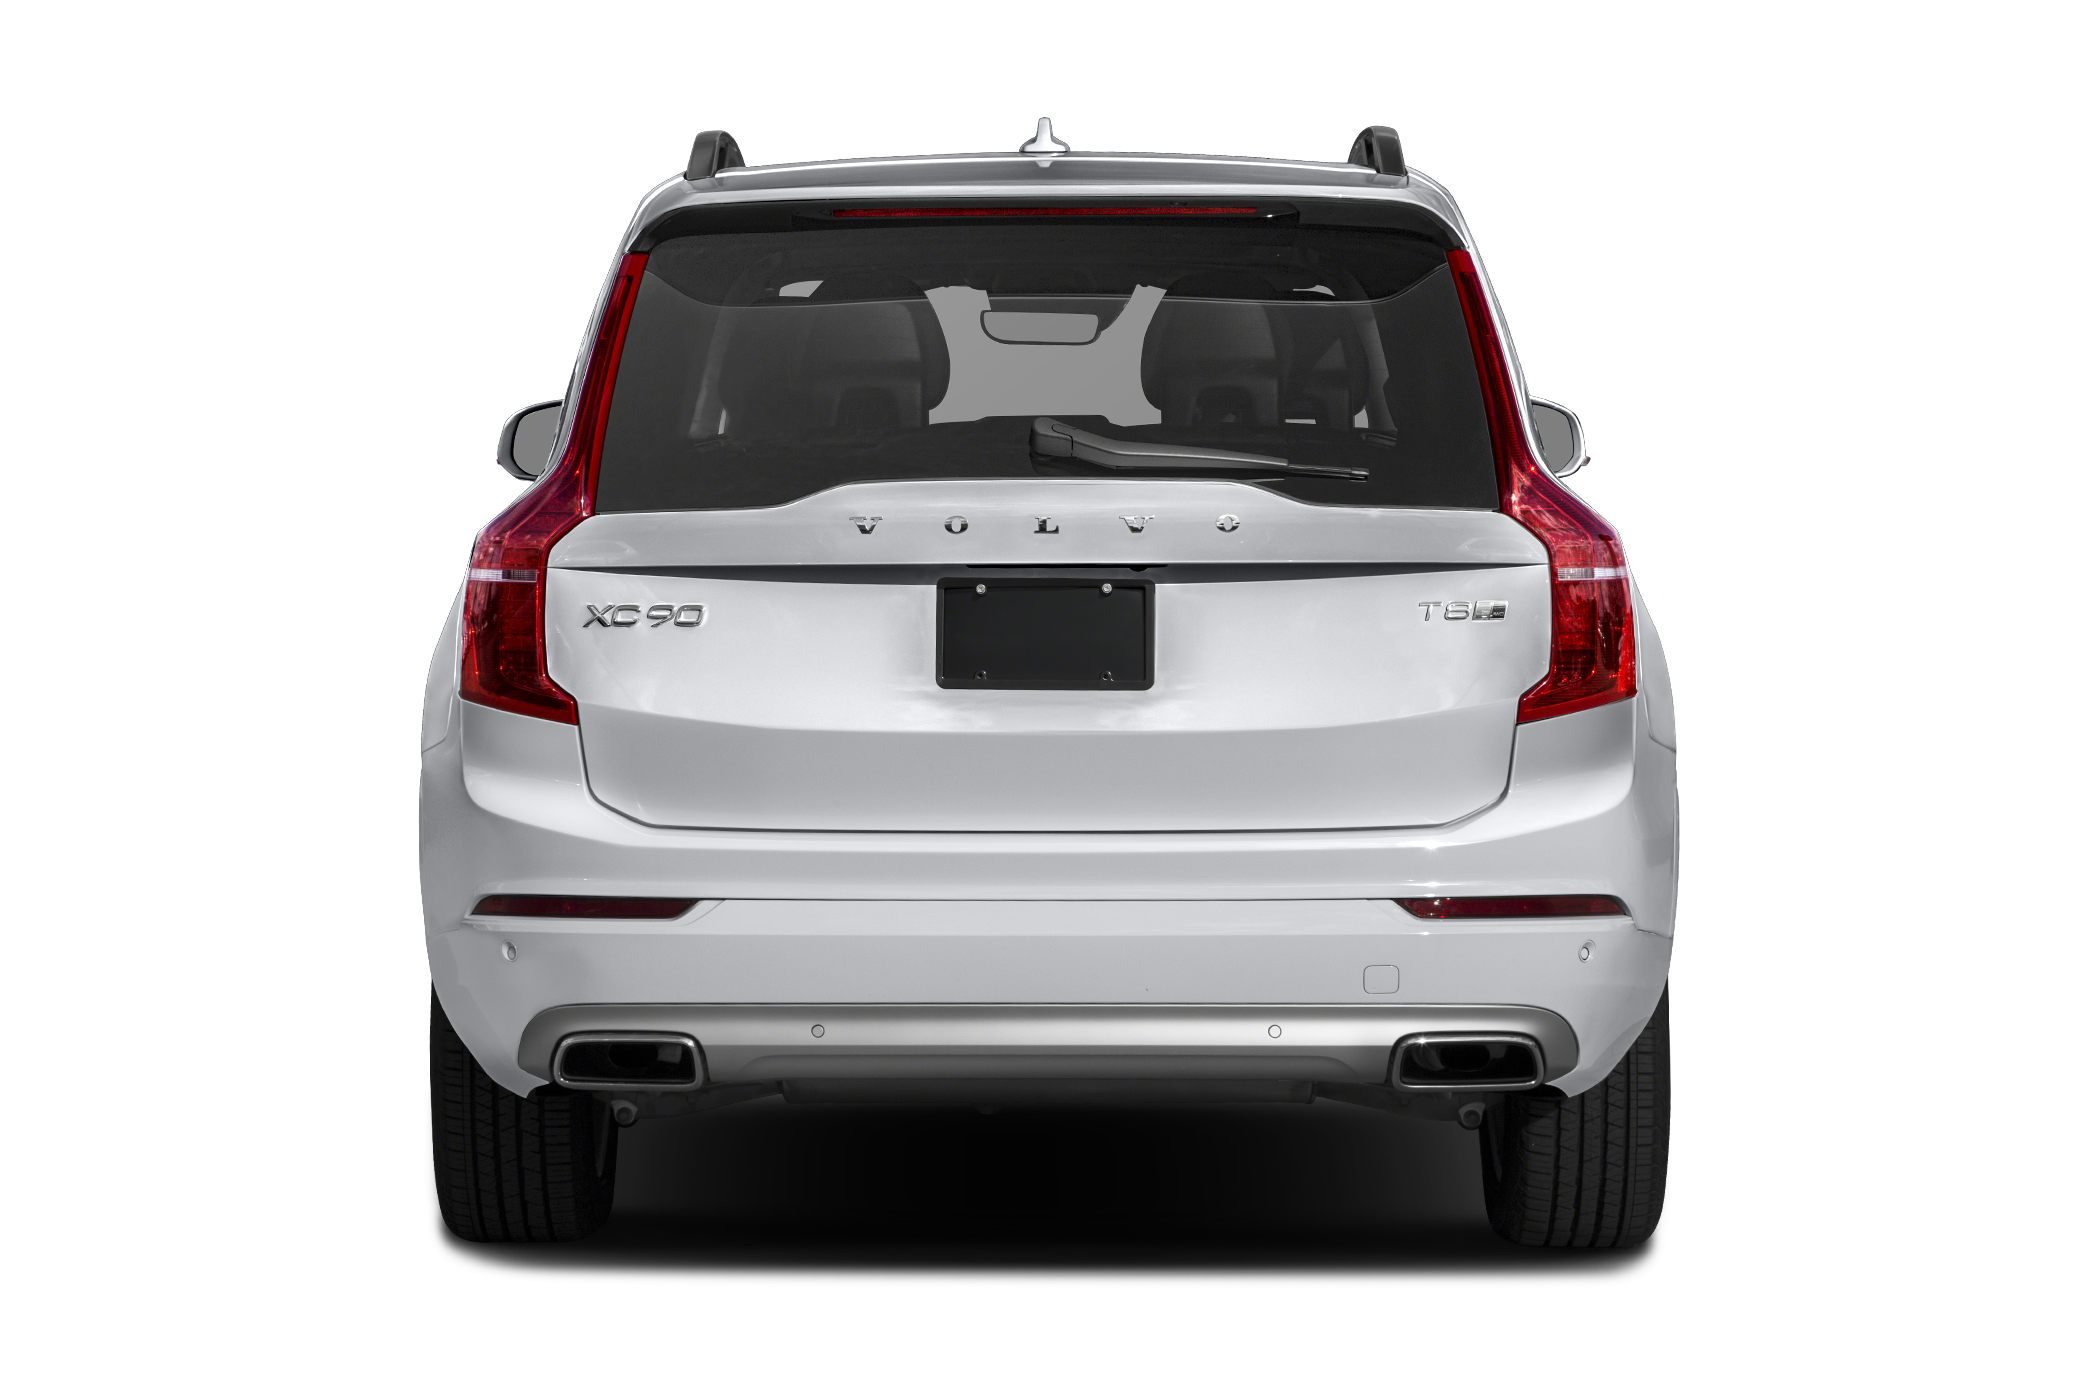 Volvo Xc90 Car Lease Deals Best Hybrid Car Lease Deals